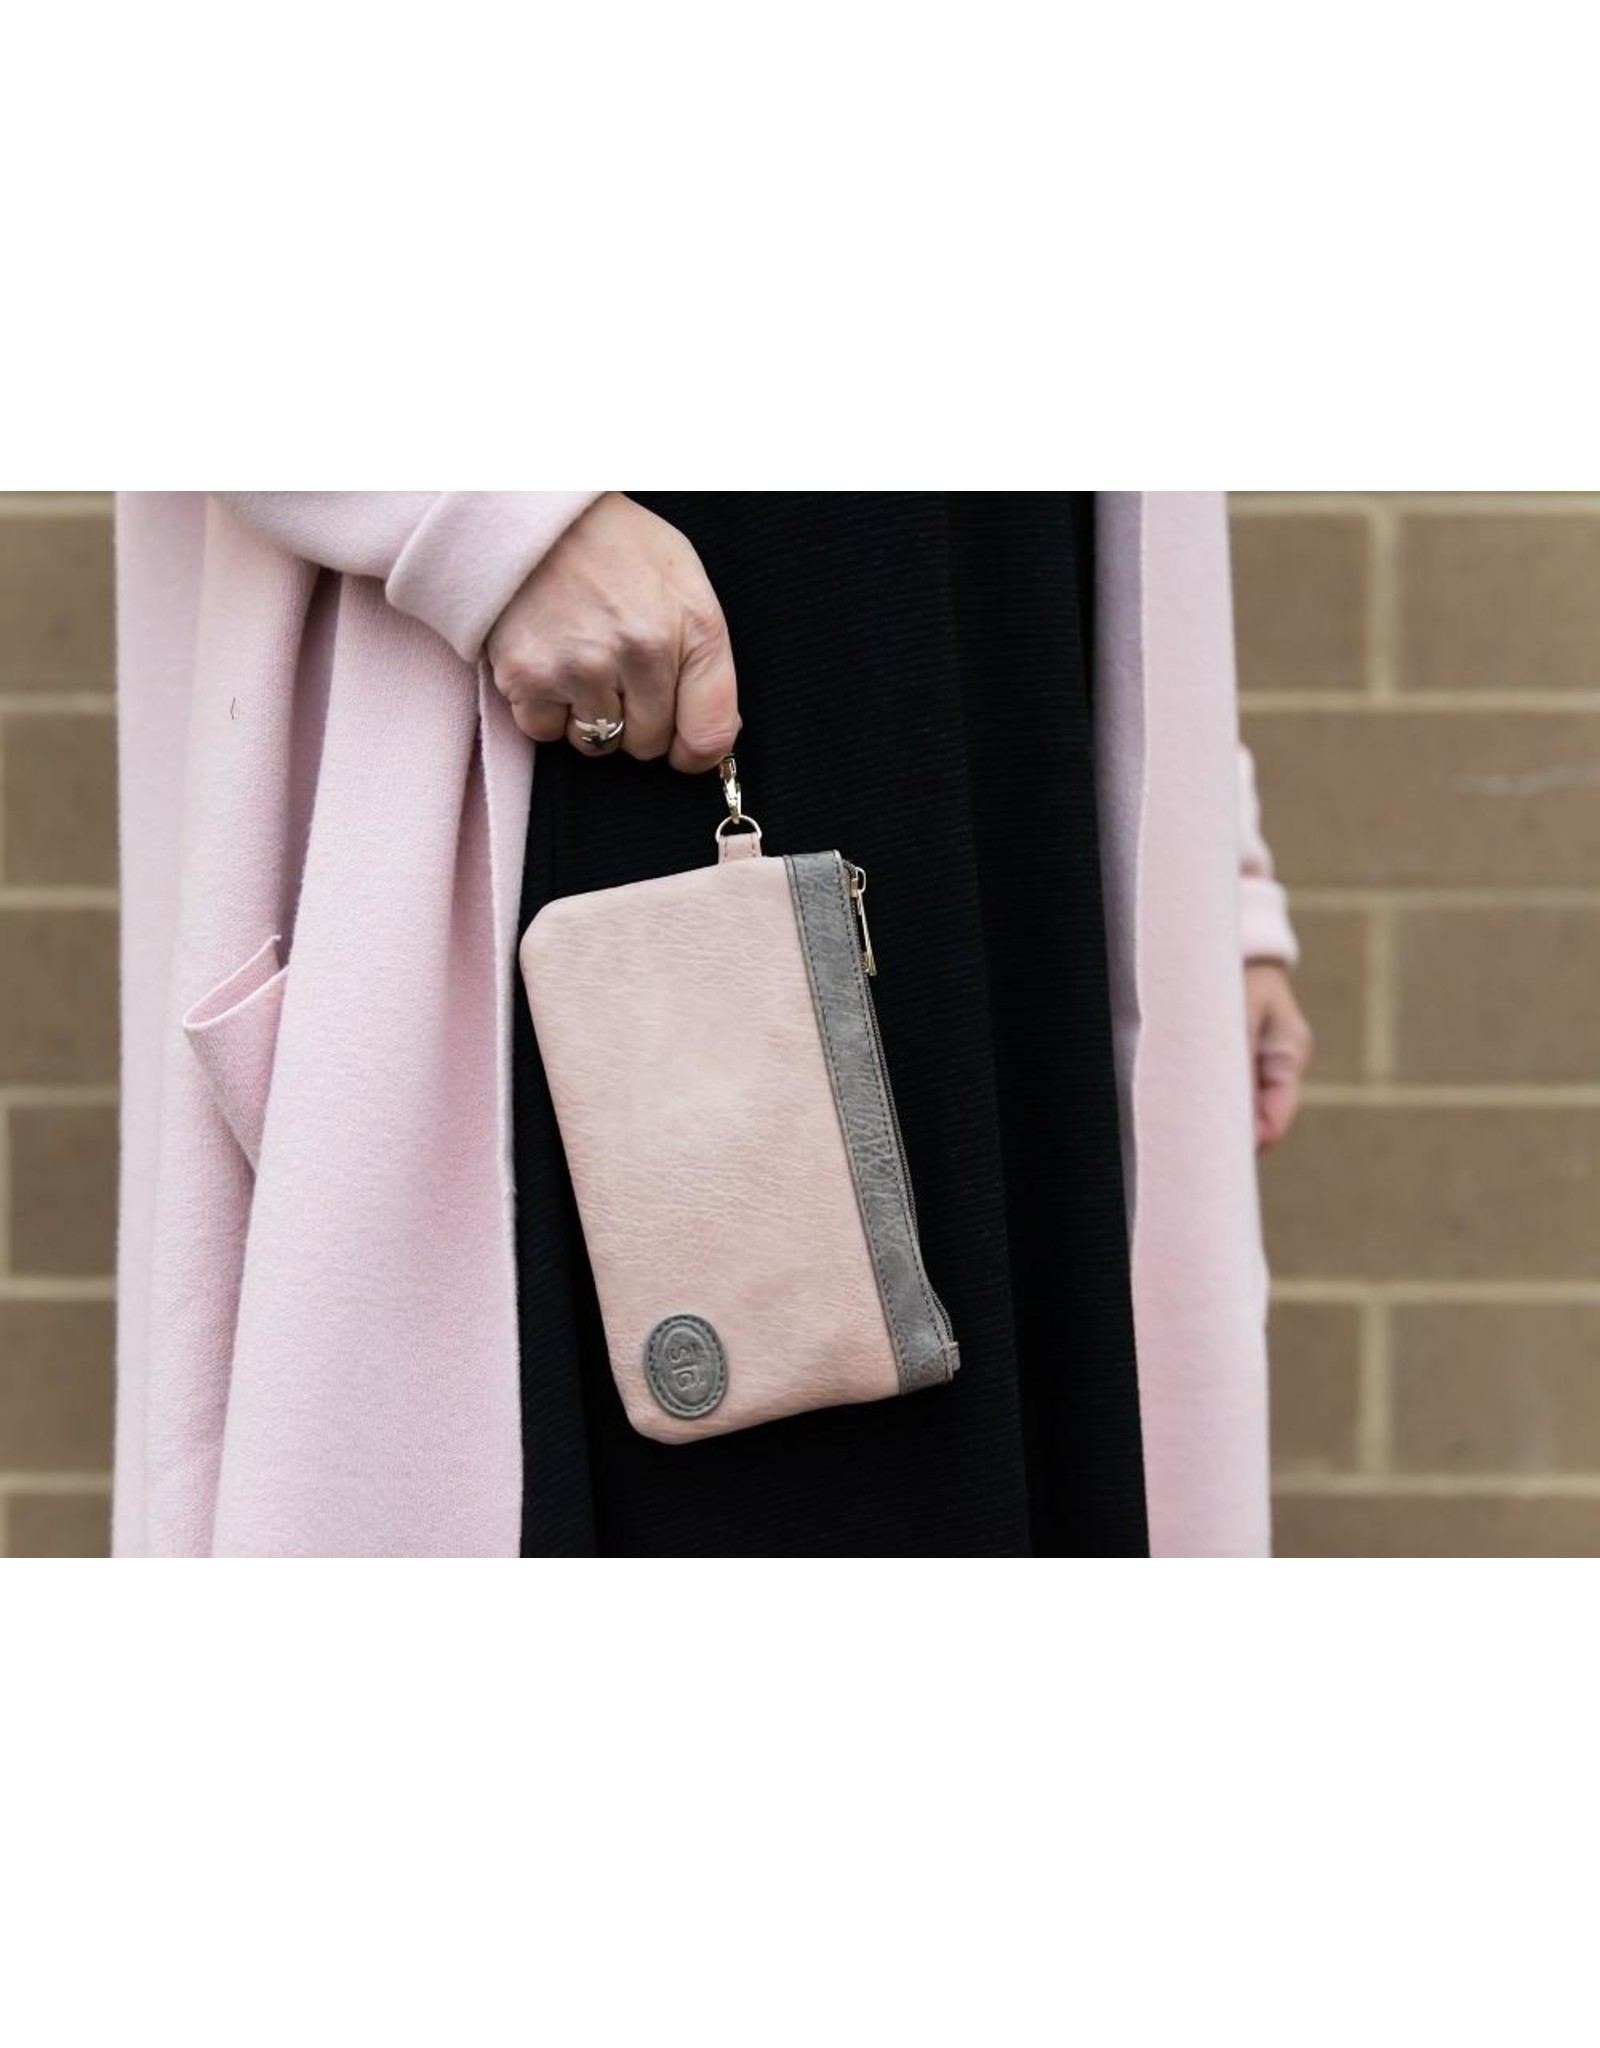 Save The Girls Cell Phone Purse - Catchy Clutch